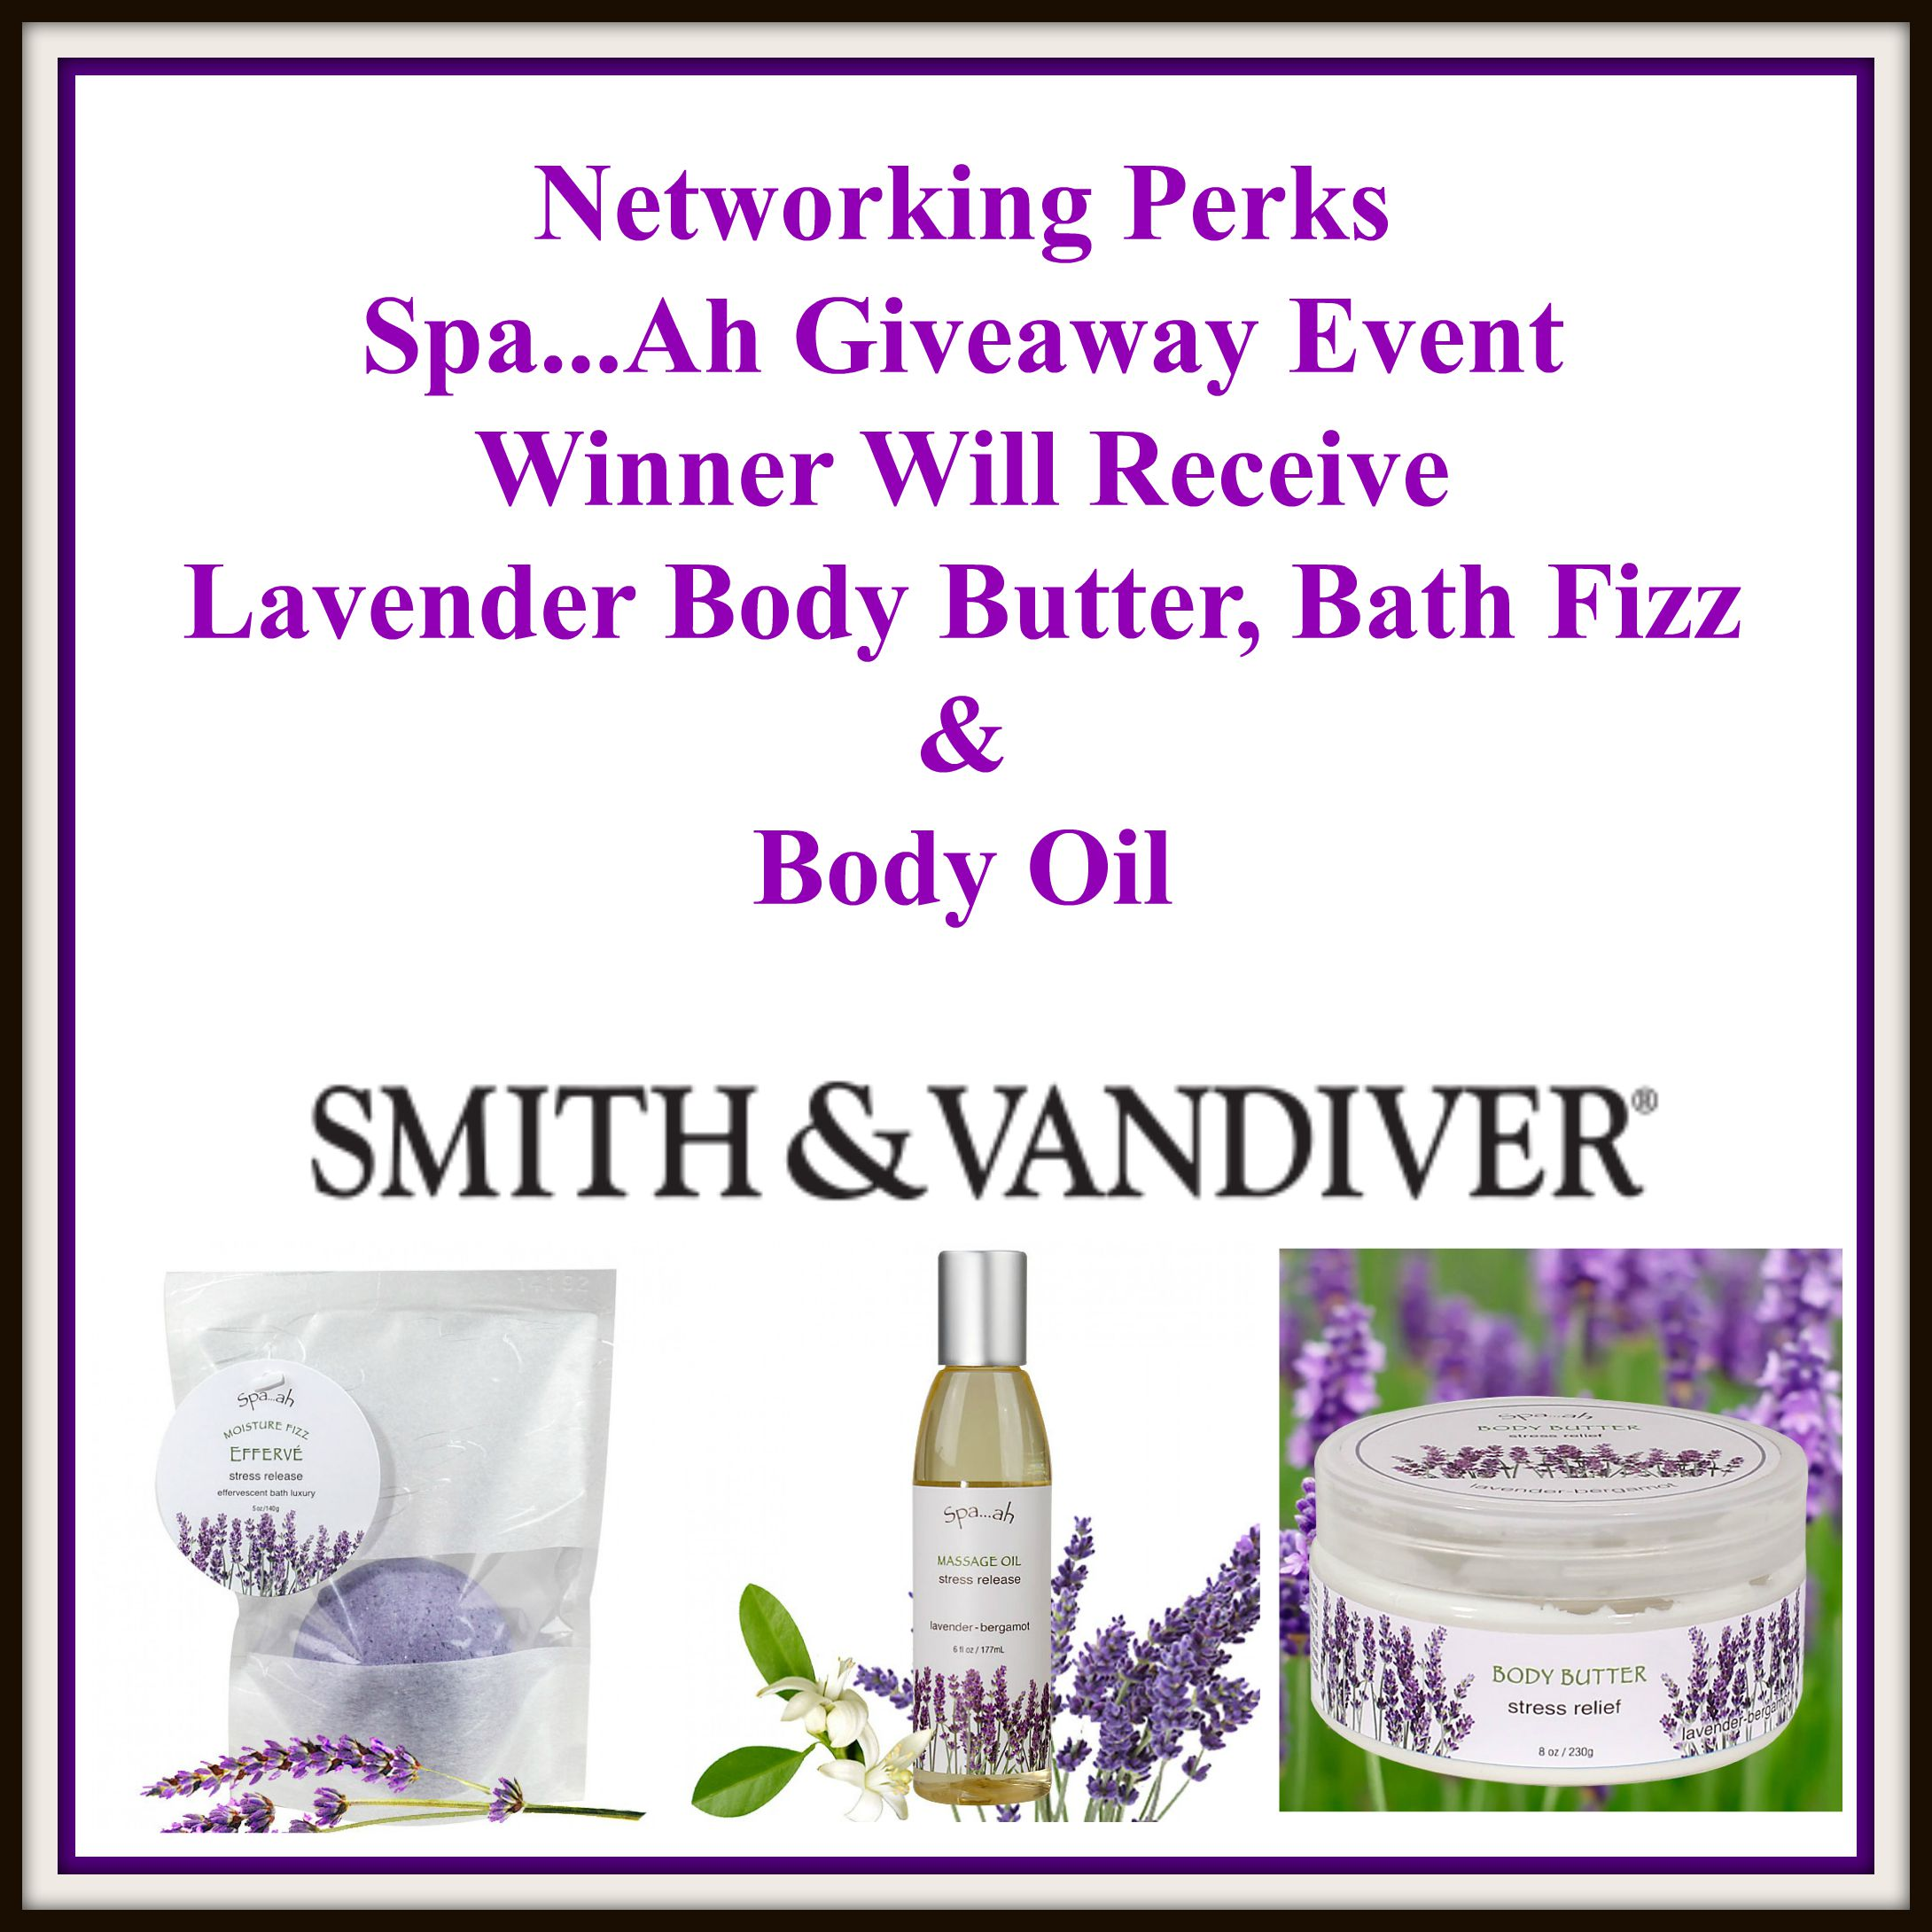 Enter the Smith & Vandiver Lavender Spa...Ah Giveaway. Ends 9/30